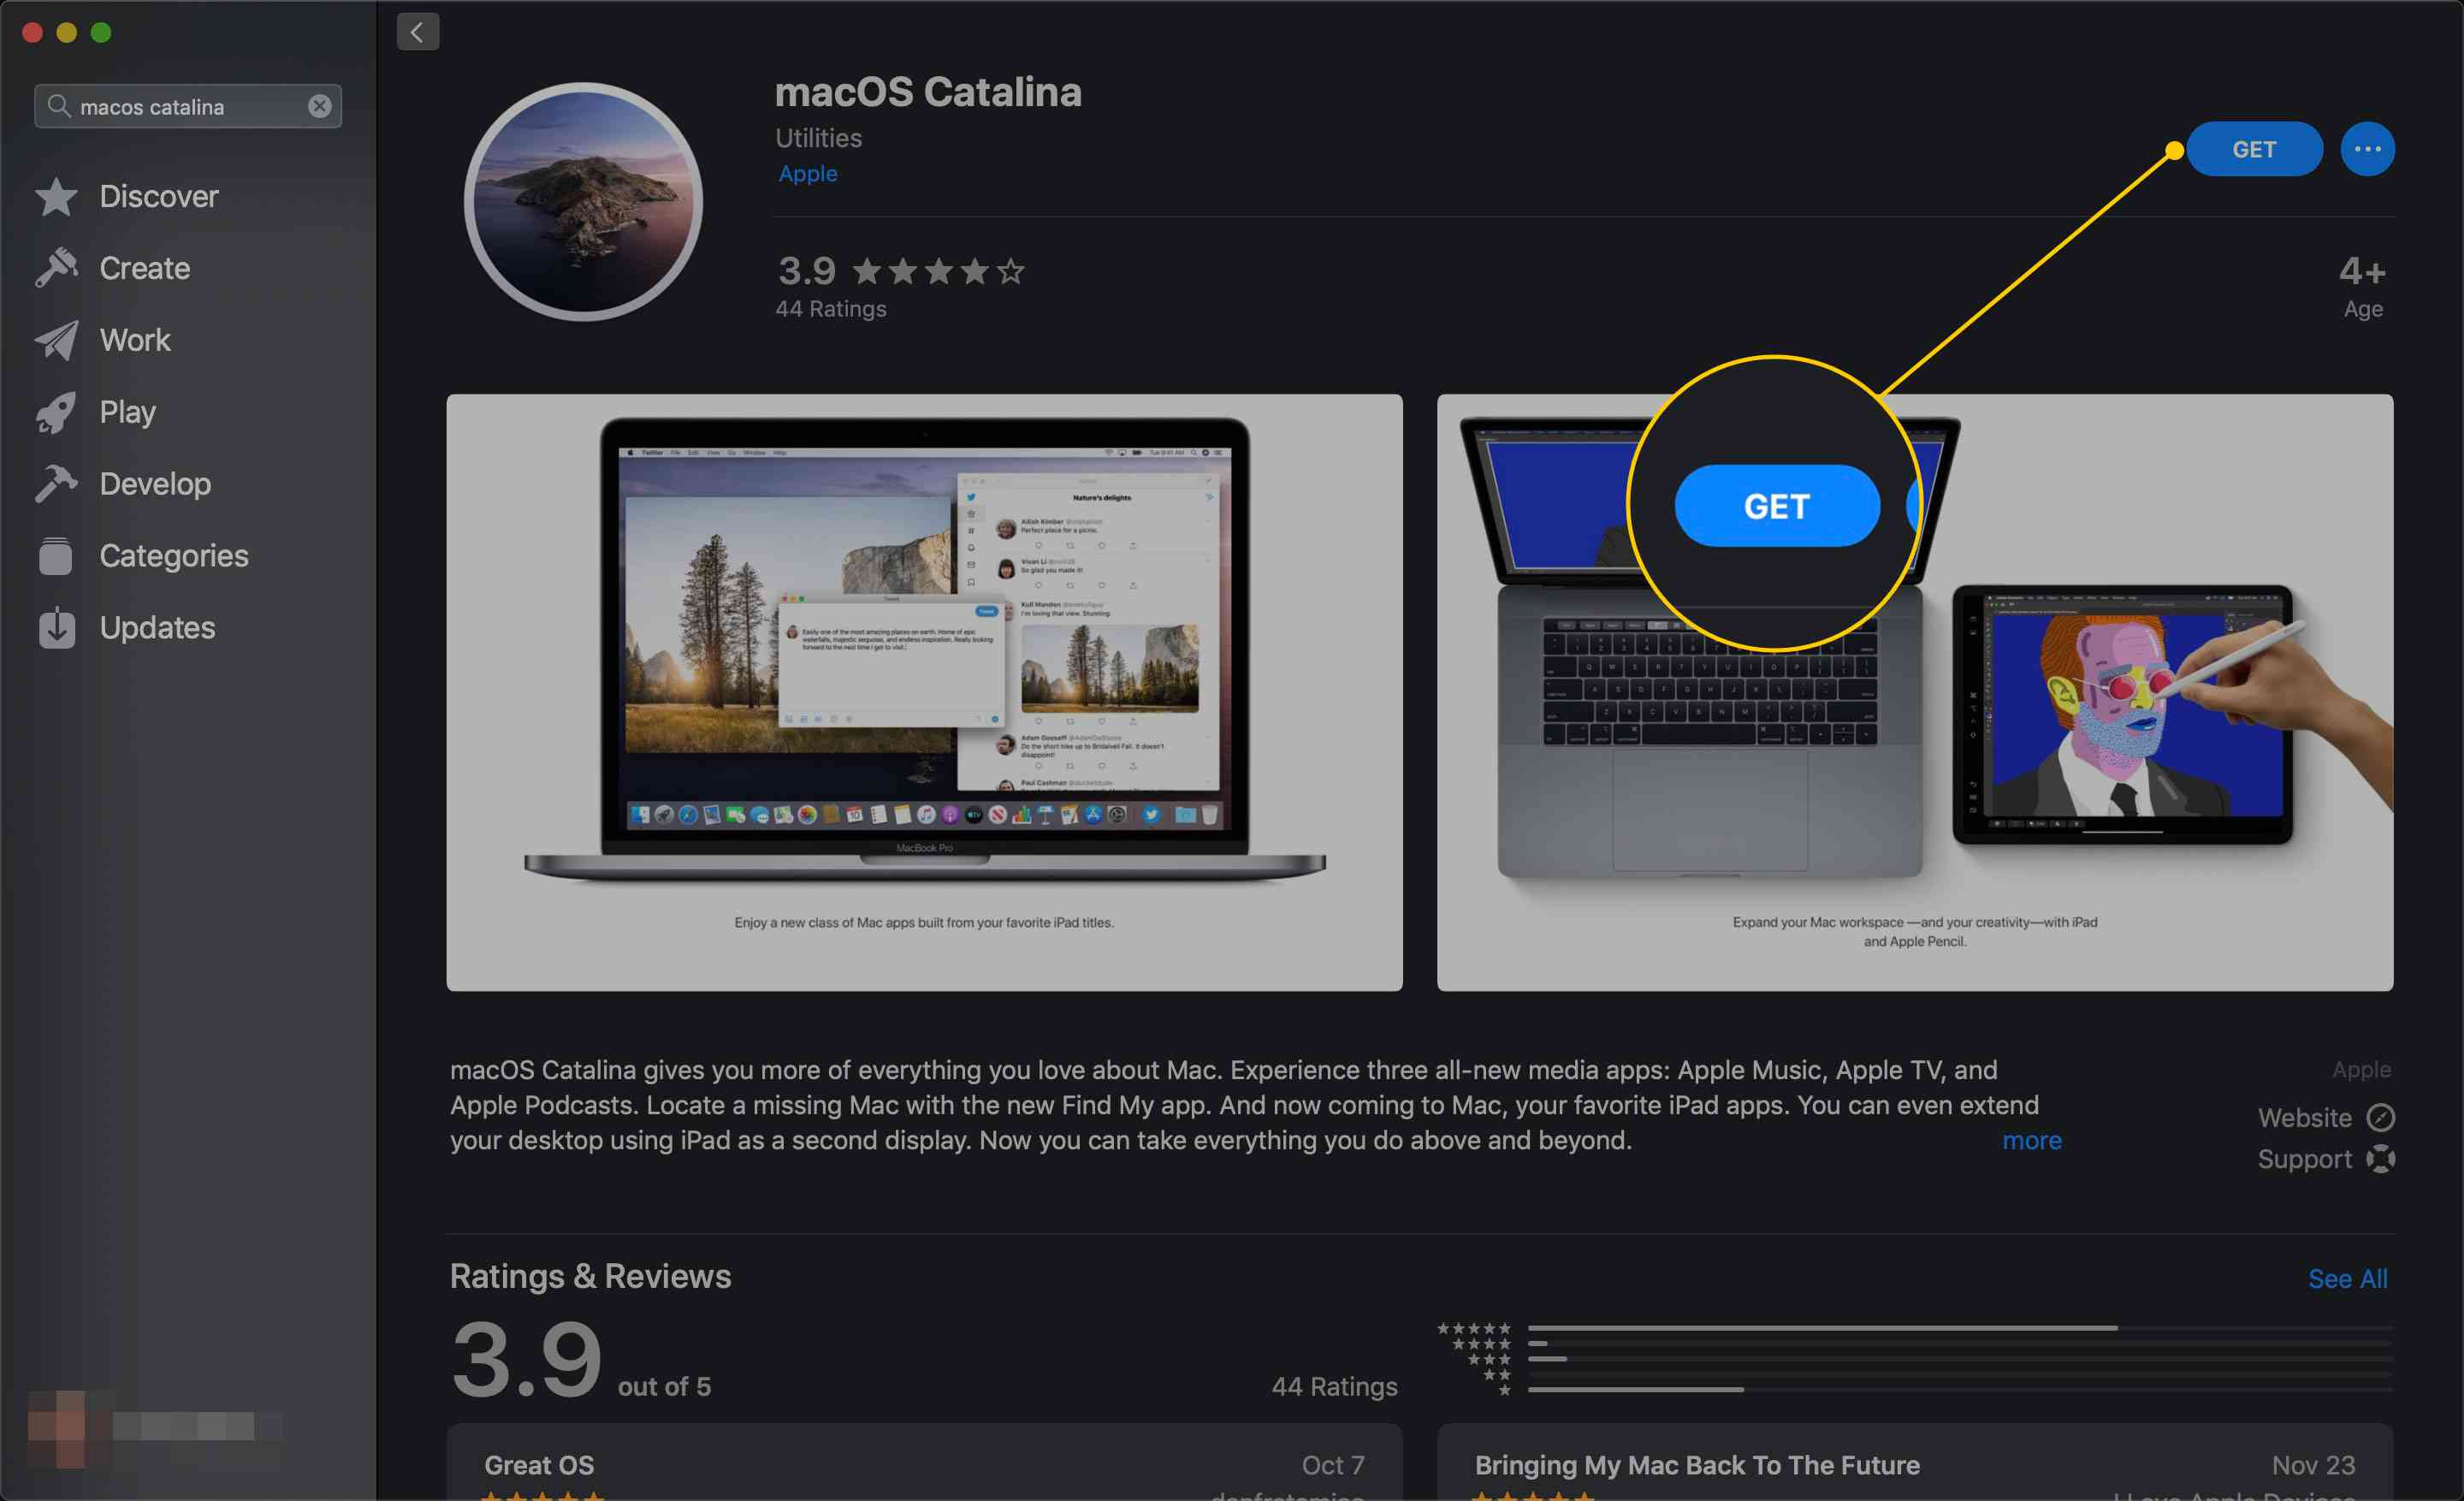 Get button on macOS Catalina's page in the App Store